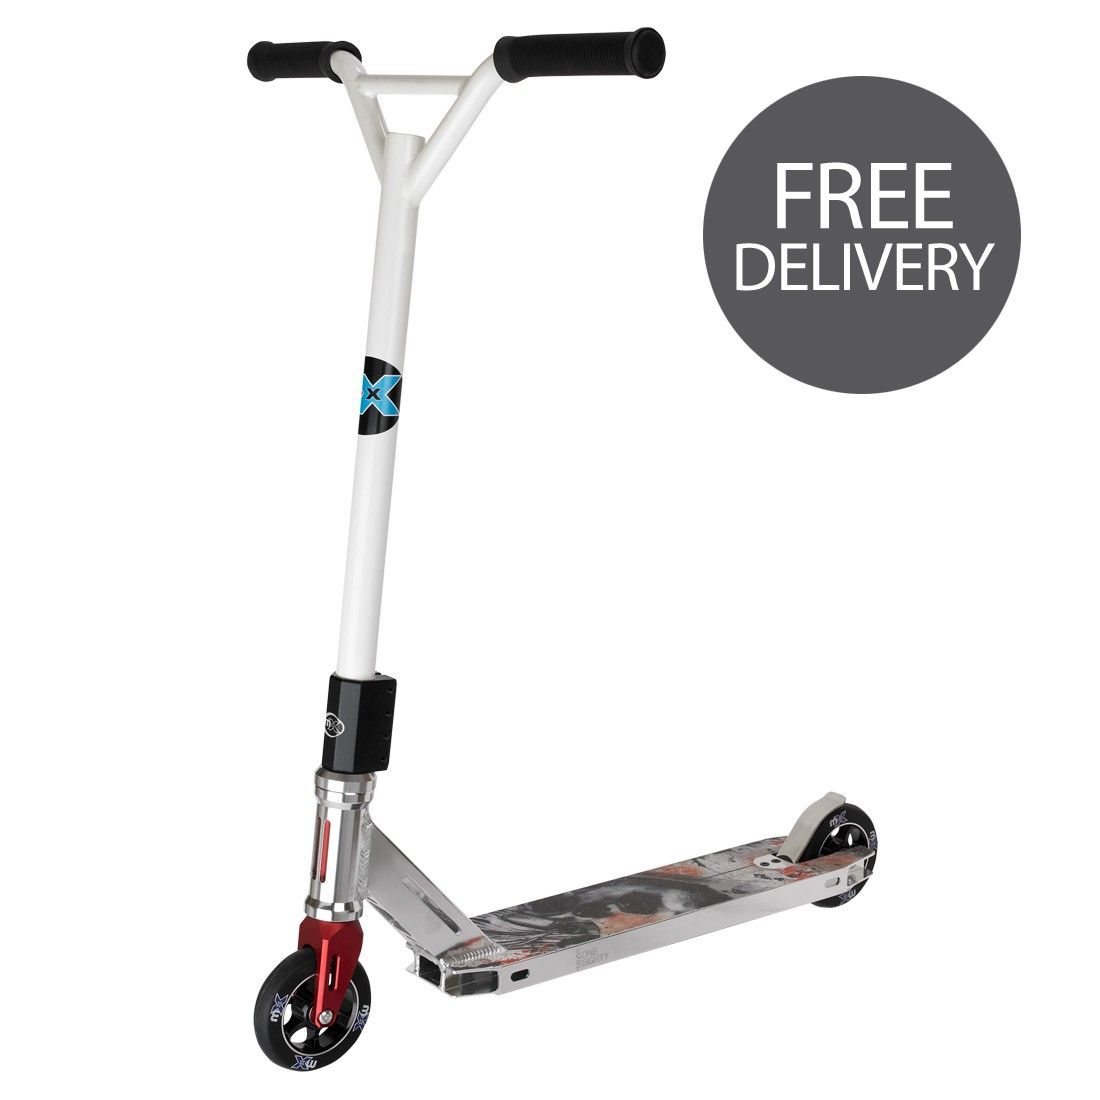 I just bought a Micro MX 20 Stunt Scooter from Micro Scooters.co ...